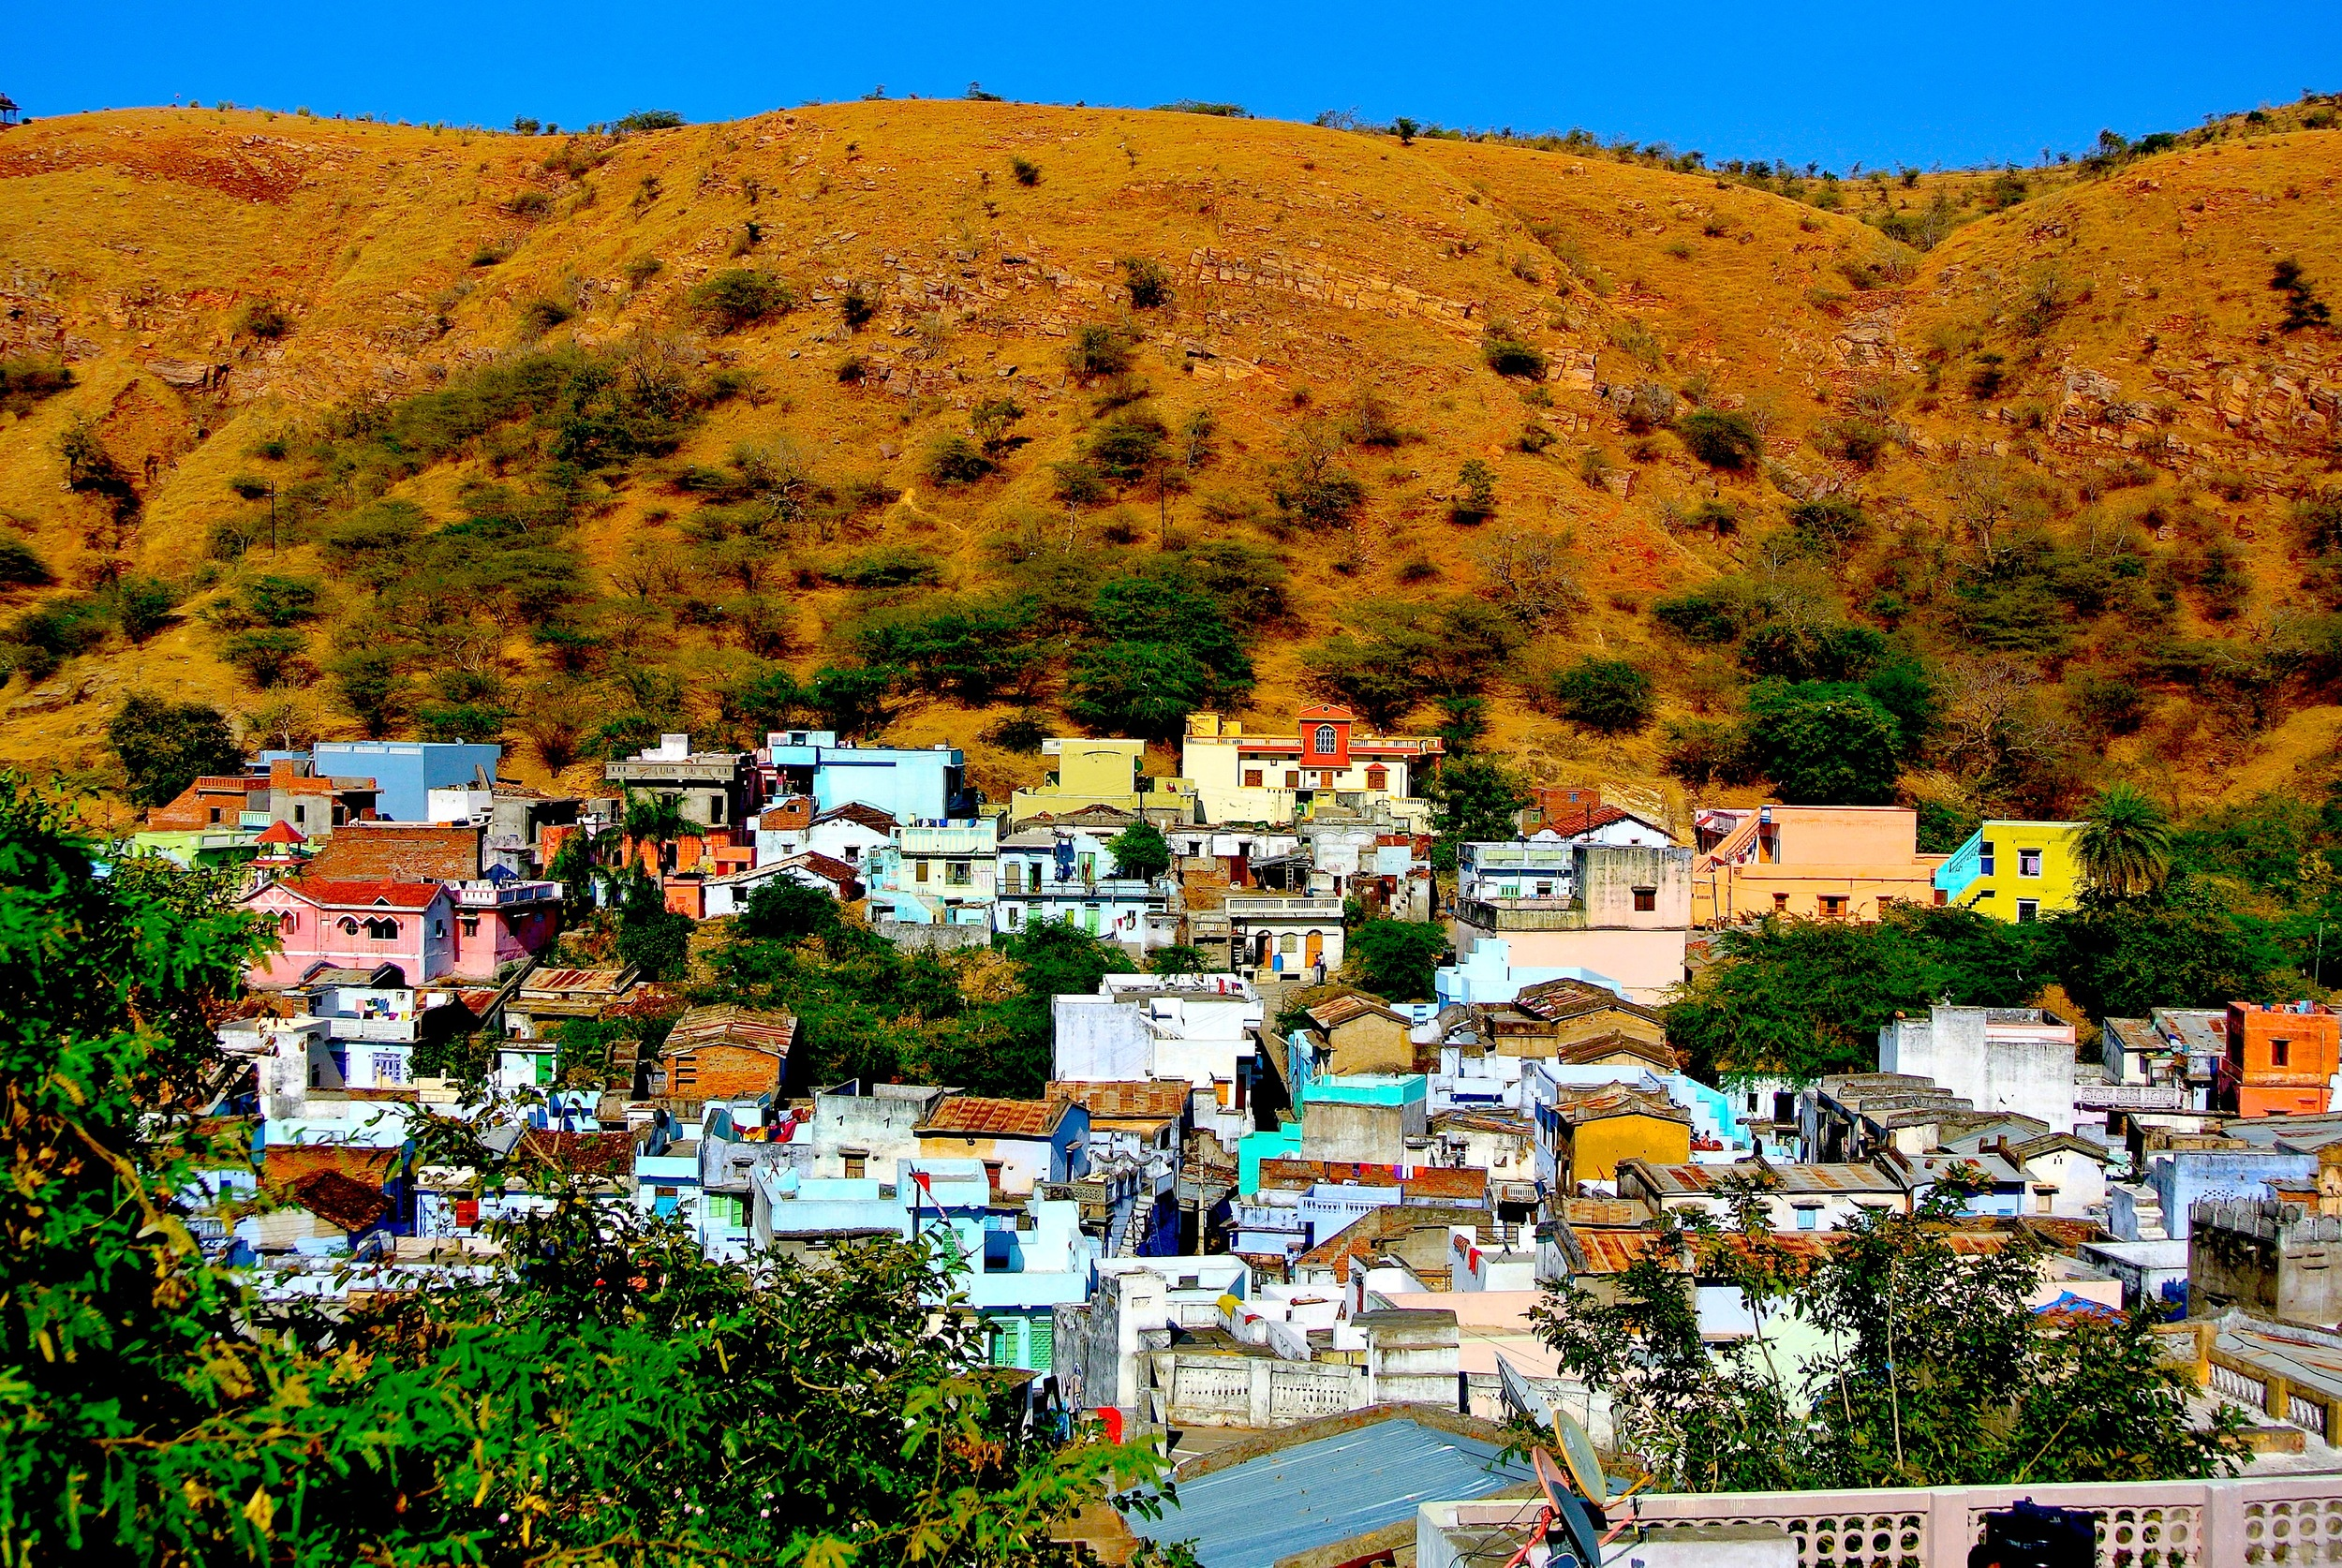 The colorful town of Dungarpur